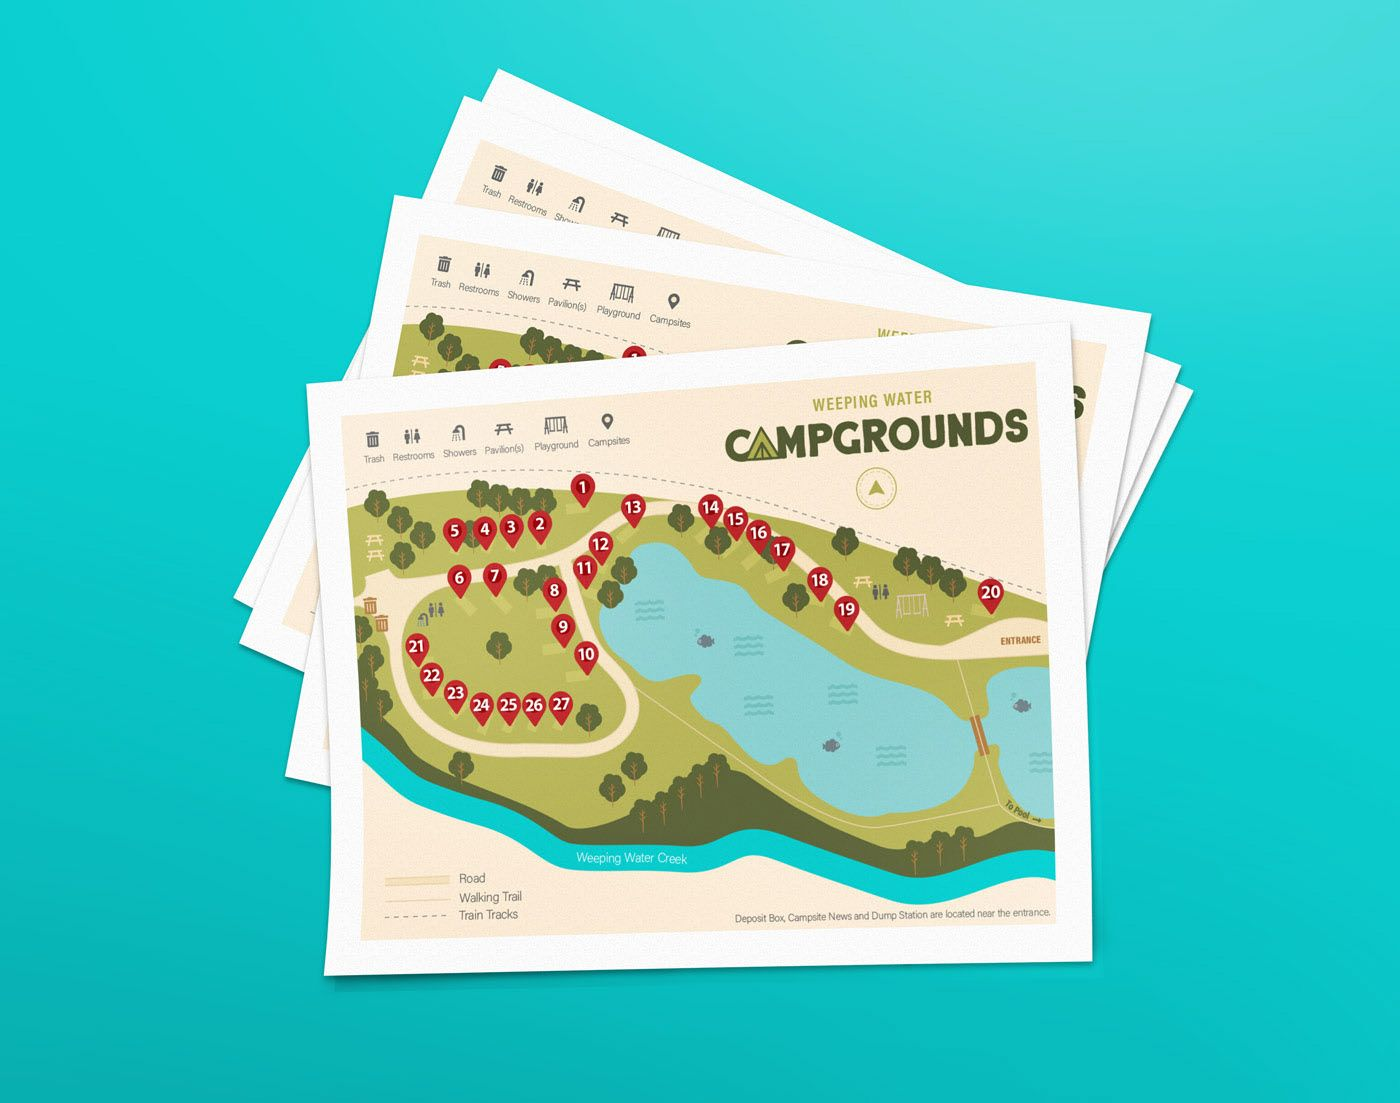 Campground Projects Photos Videos Logos Illustrations And Branding On Behance In 2020 Project Photo Branding Campground